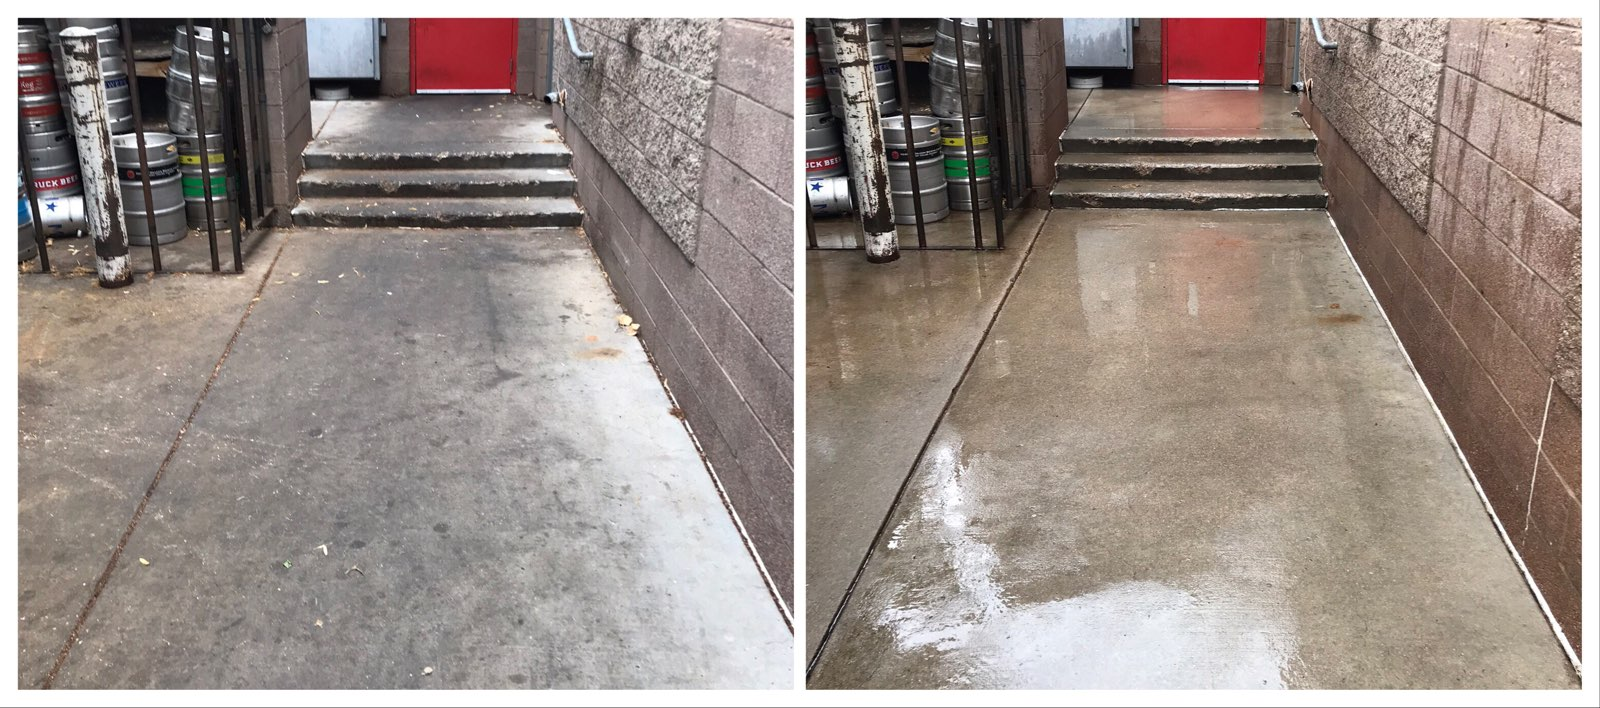 Restaurant Cleaning & Pressure Washing in Fort Collins, Loveland, Greeley, Windsor, Longmont, Berthoud Wellington, Estes Park, Cheyenne Wyoming and surrounding areas.